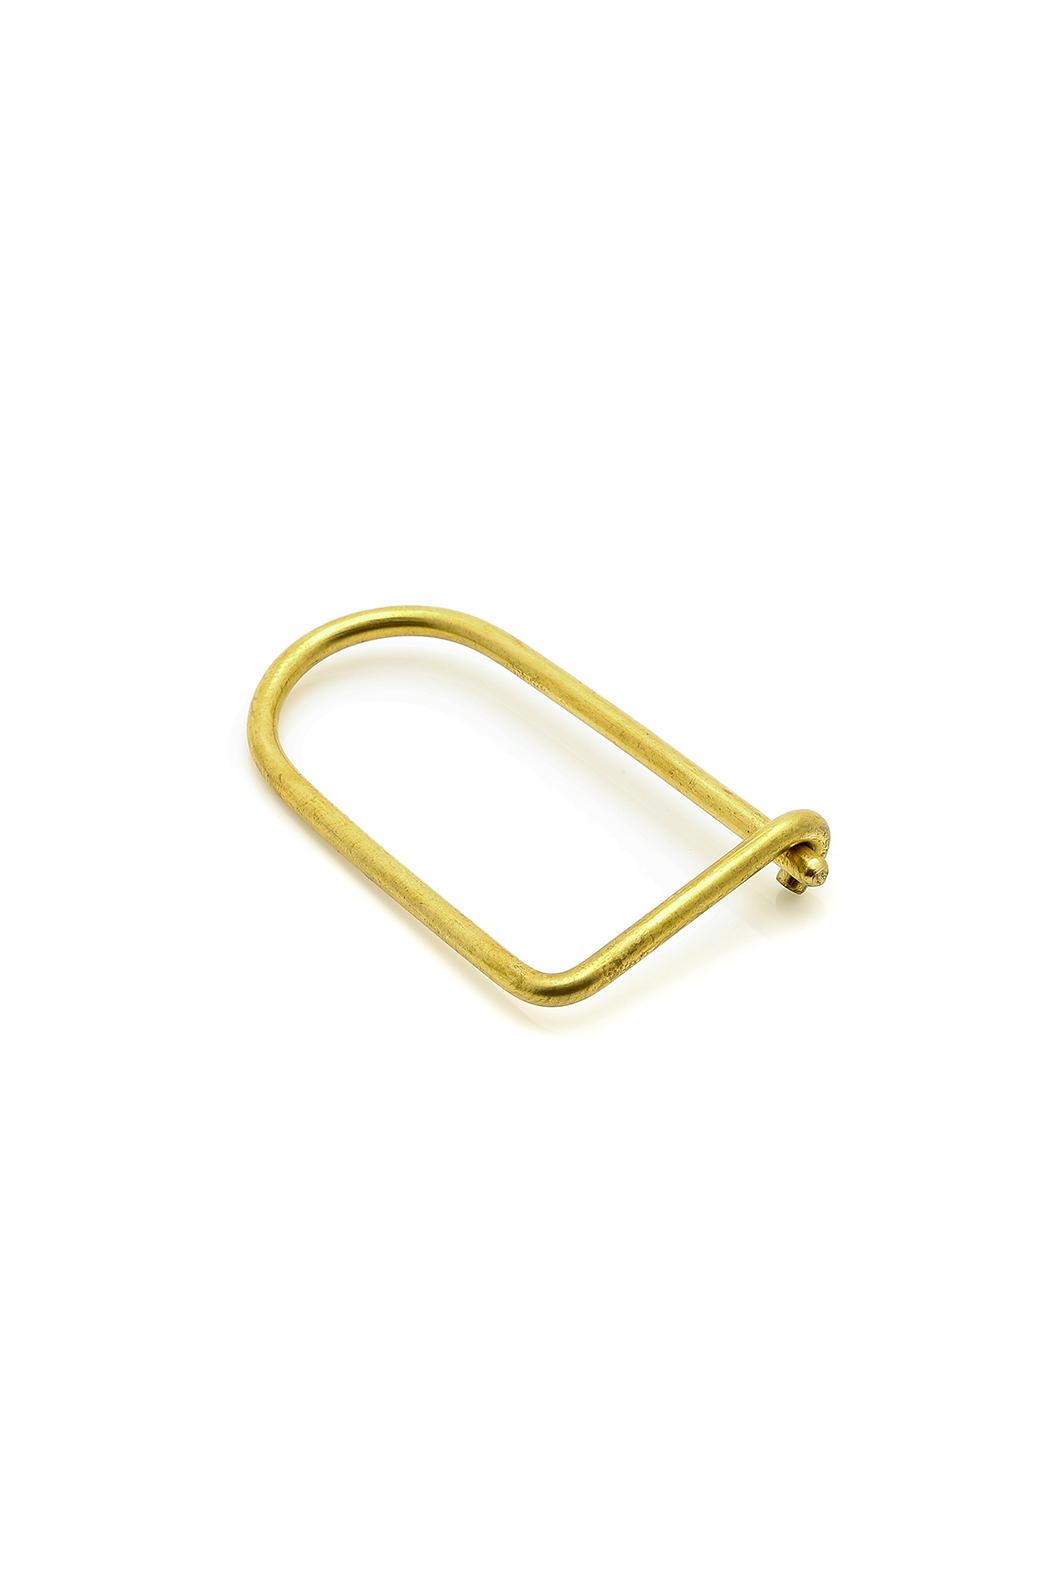 Milly & Earl Brass Key Ring - Main Image